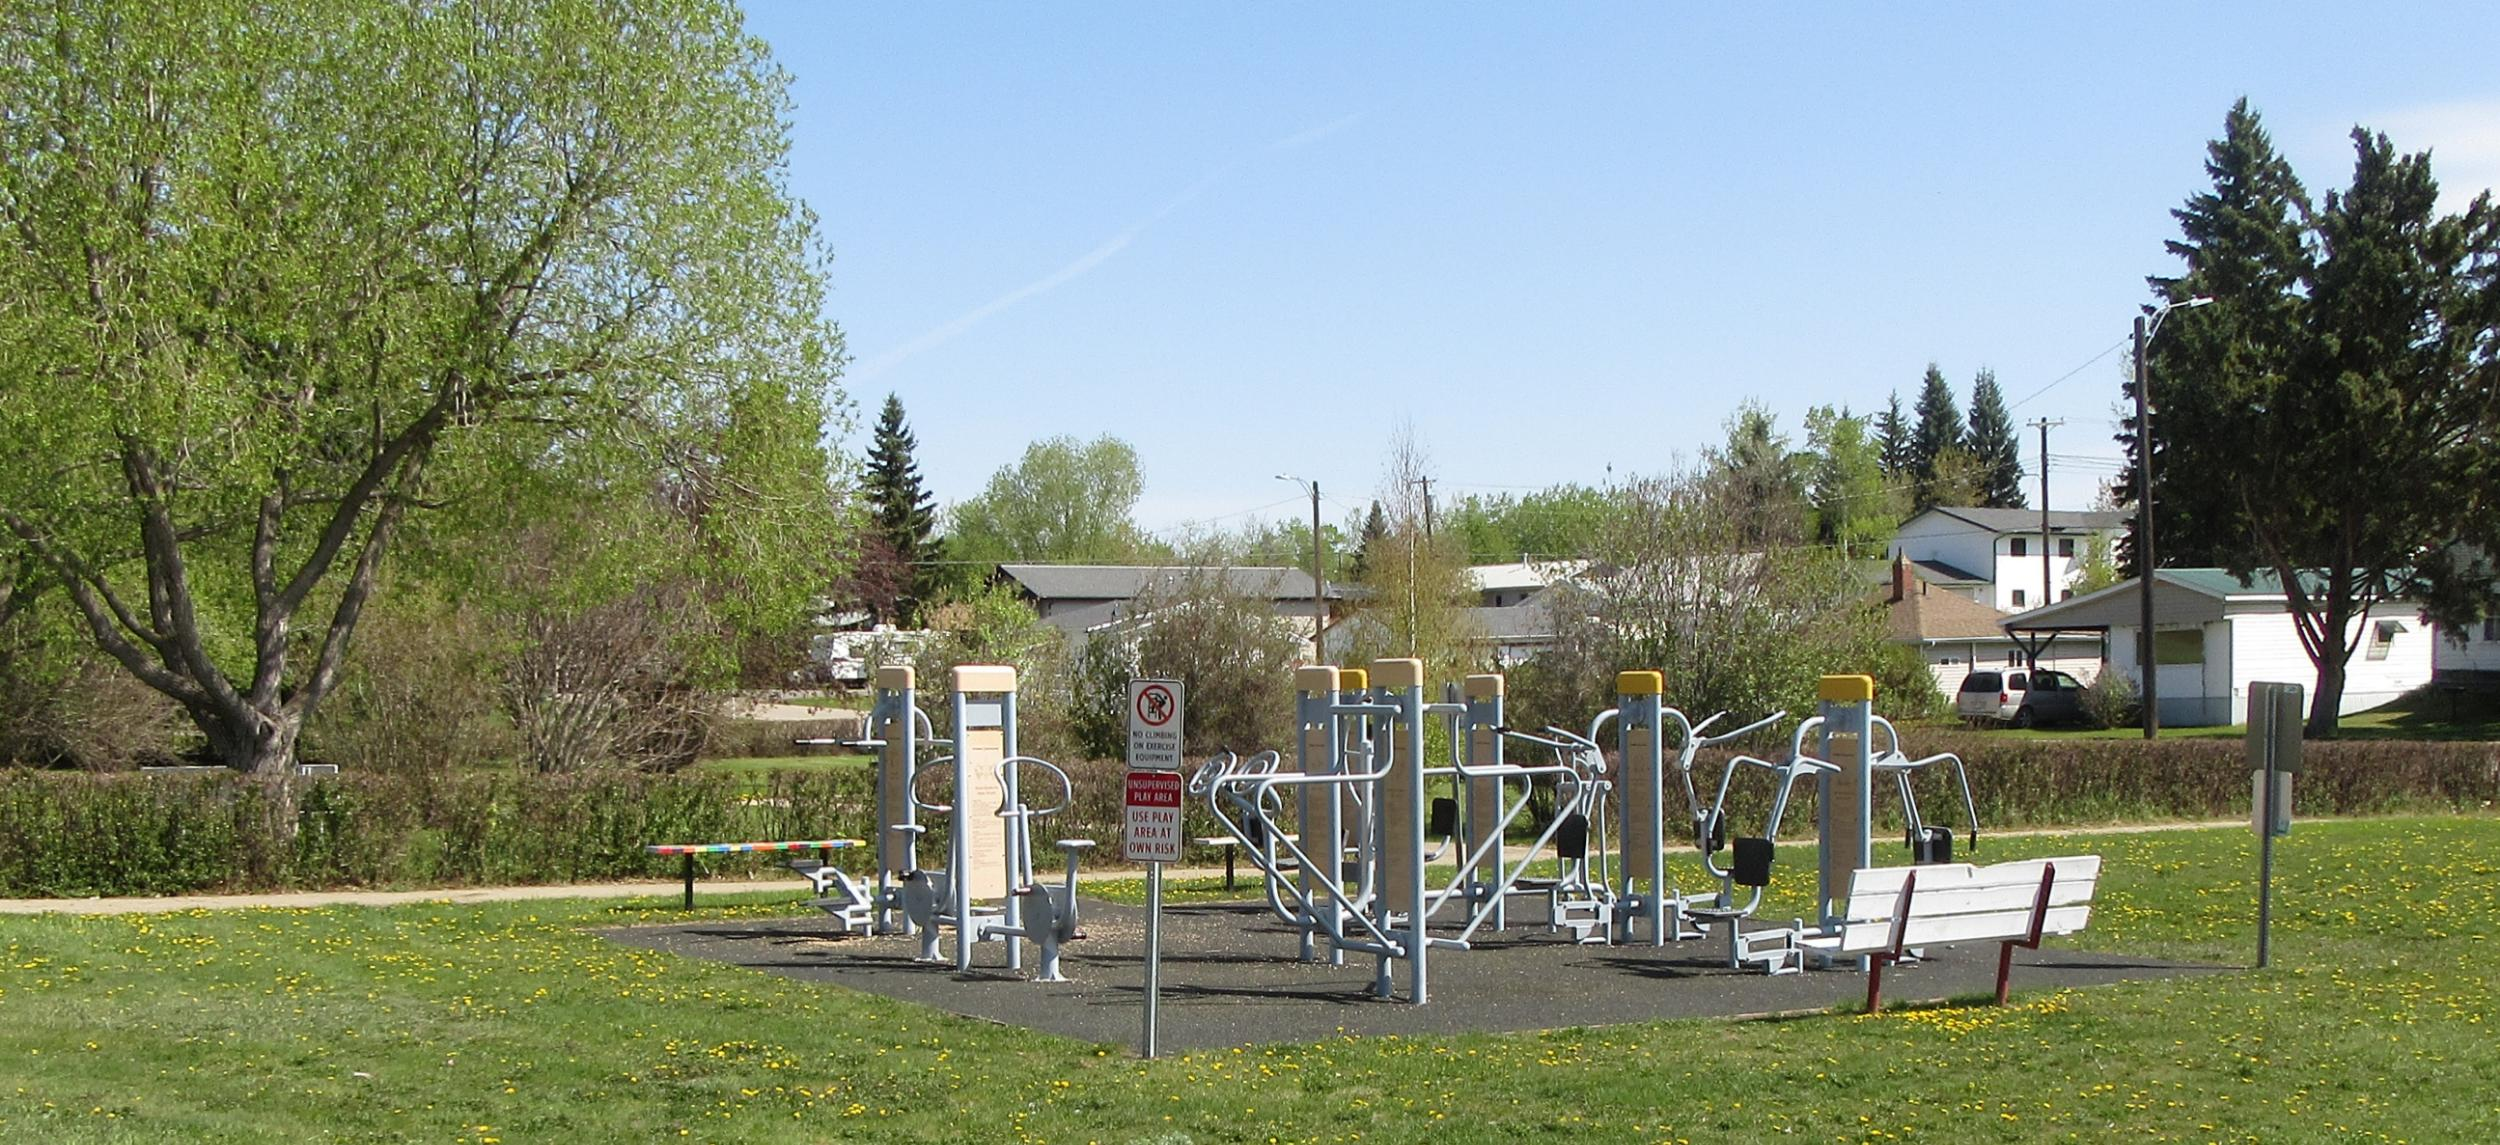 Outdoor gym.jpg